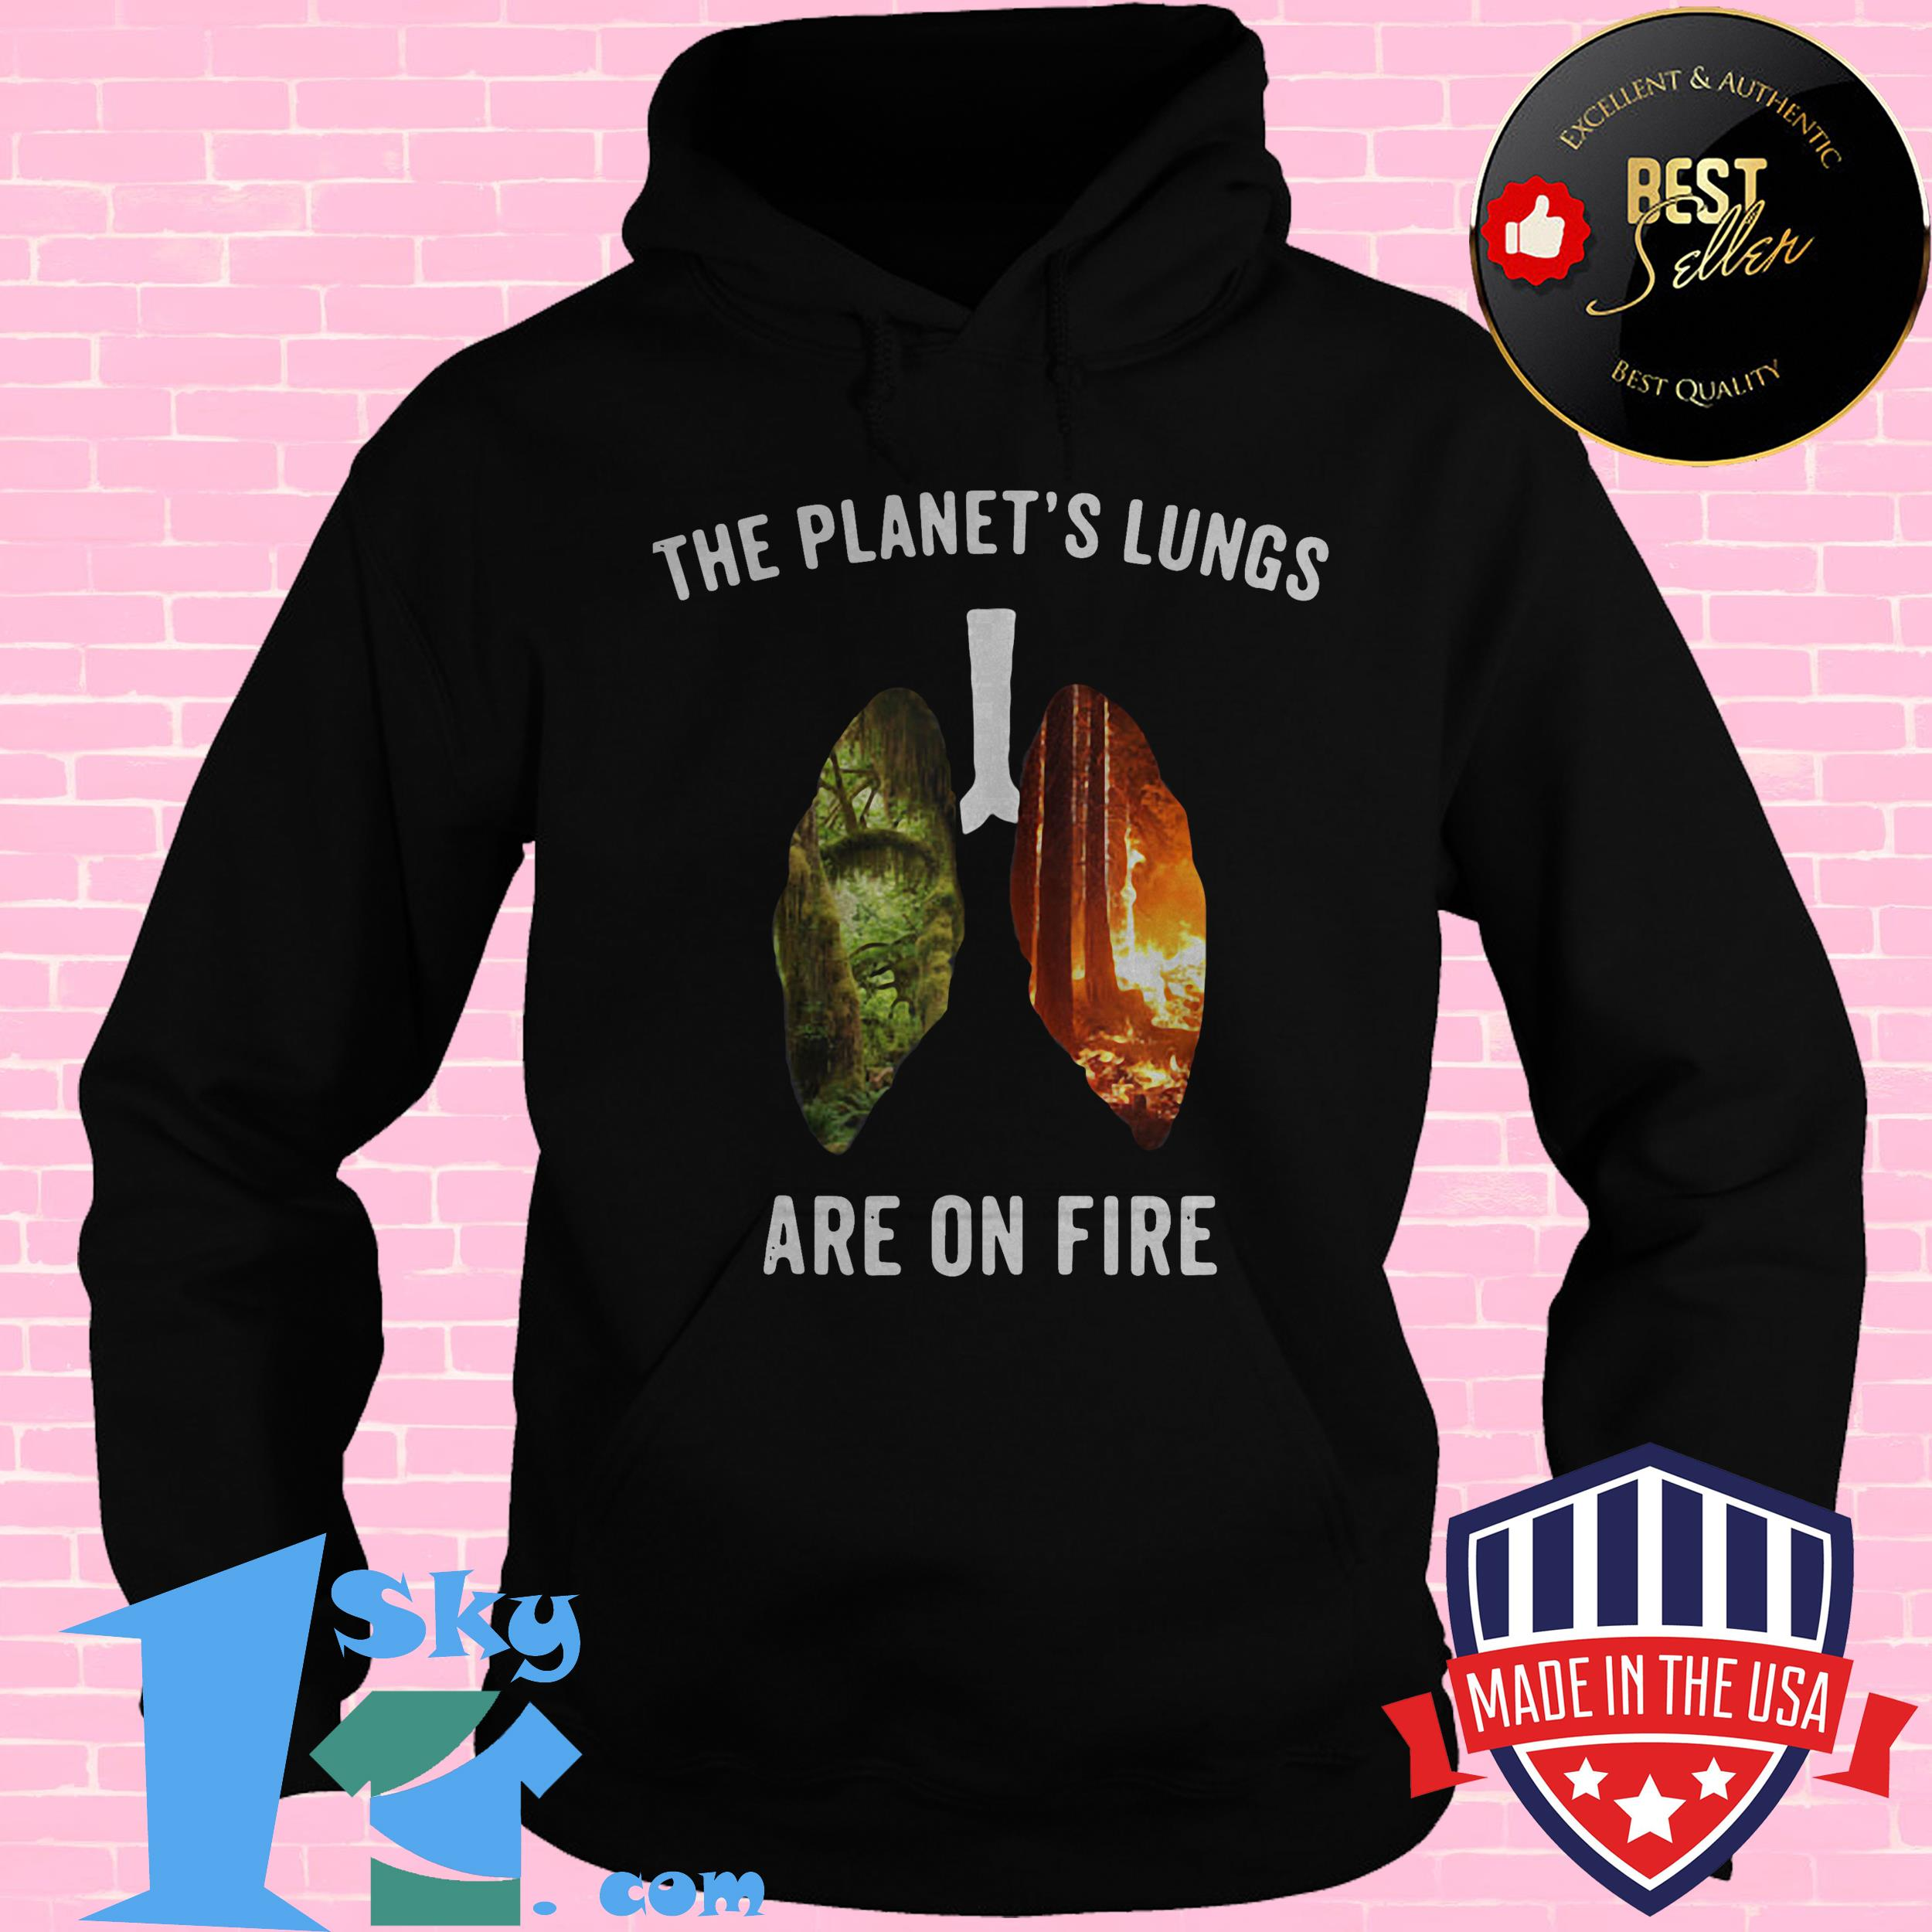 the planets lungs are on fire brazil rainforest burning payforamazon hoodie - The Planet's Lungs Are On Fire Brazil Rainforest Burning #payforamazon shirt